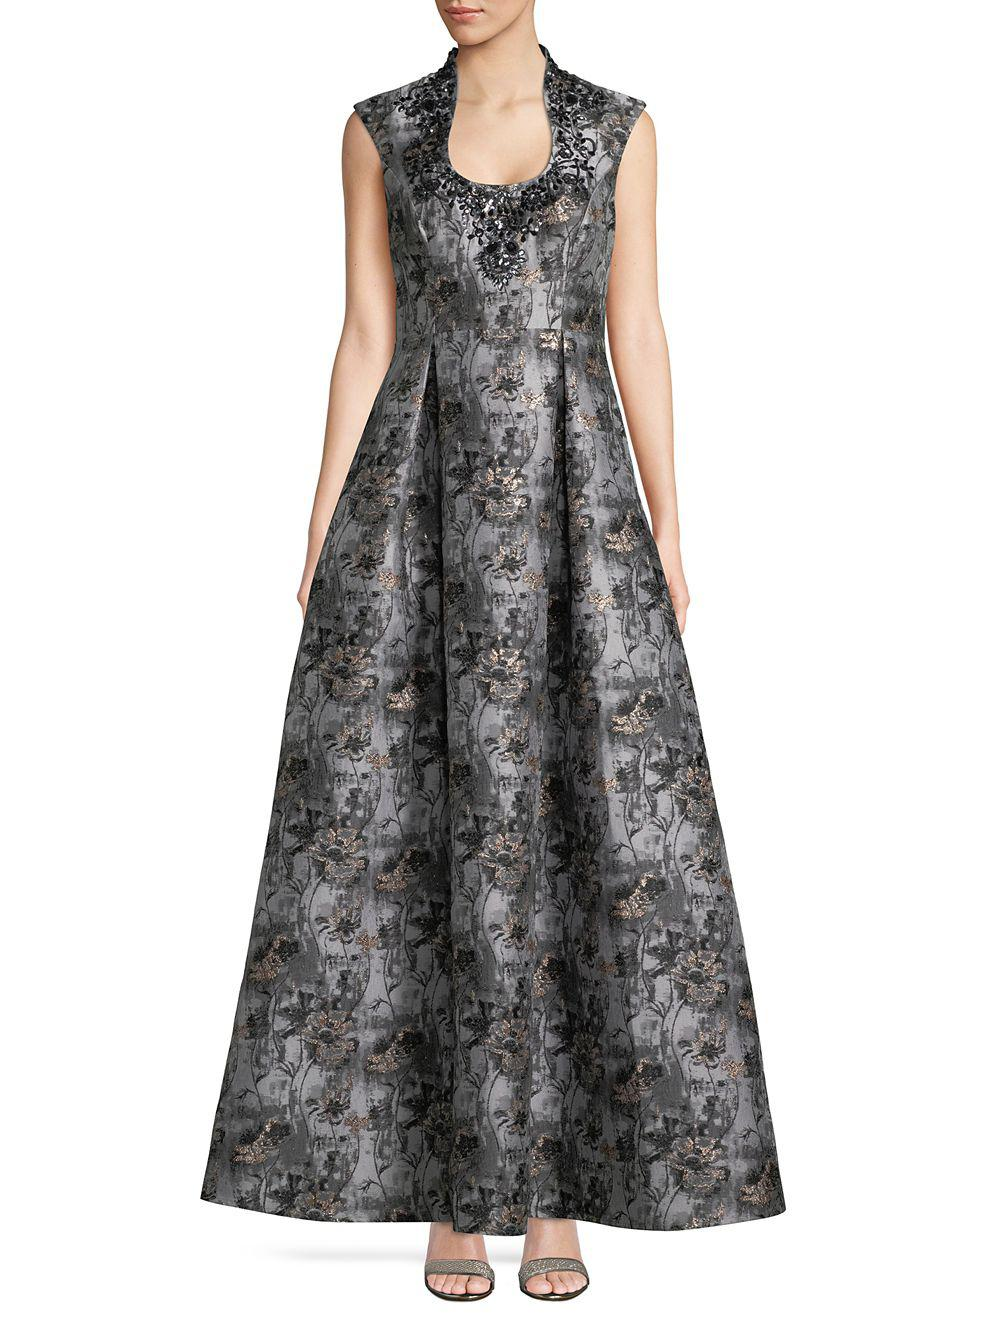 846f0be2aa1 Aidan By Aidan Mattox. Women s Embellished Floral Gown